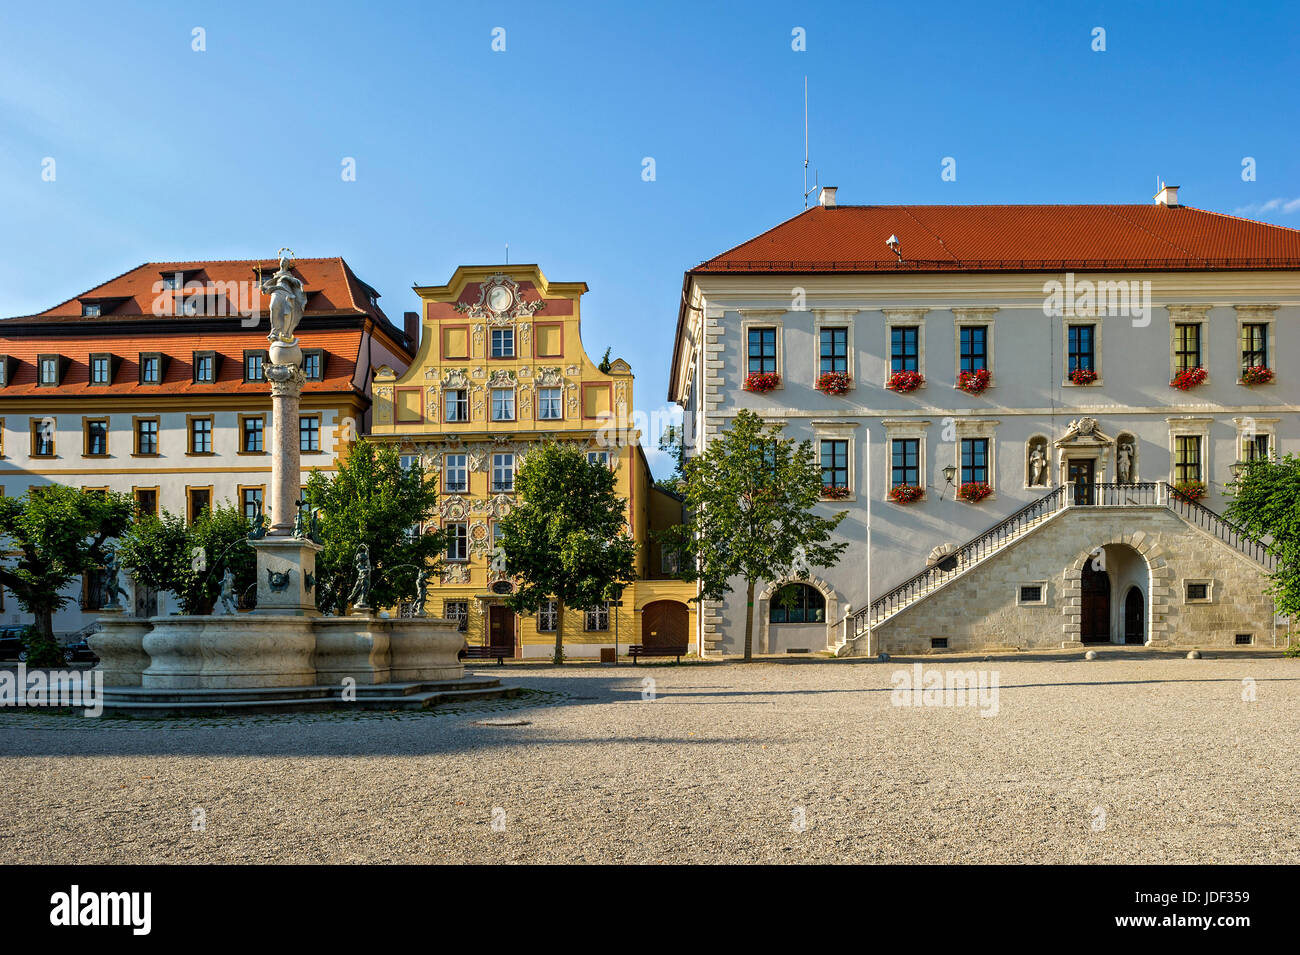 Zieglerhaus, Marienbrunnen, aristocratic town house Thurn- and Taxishaus, Town Hall, Karls square, Neuburg on the - Stock Image